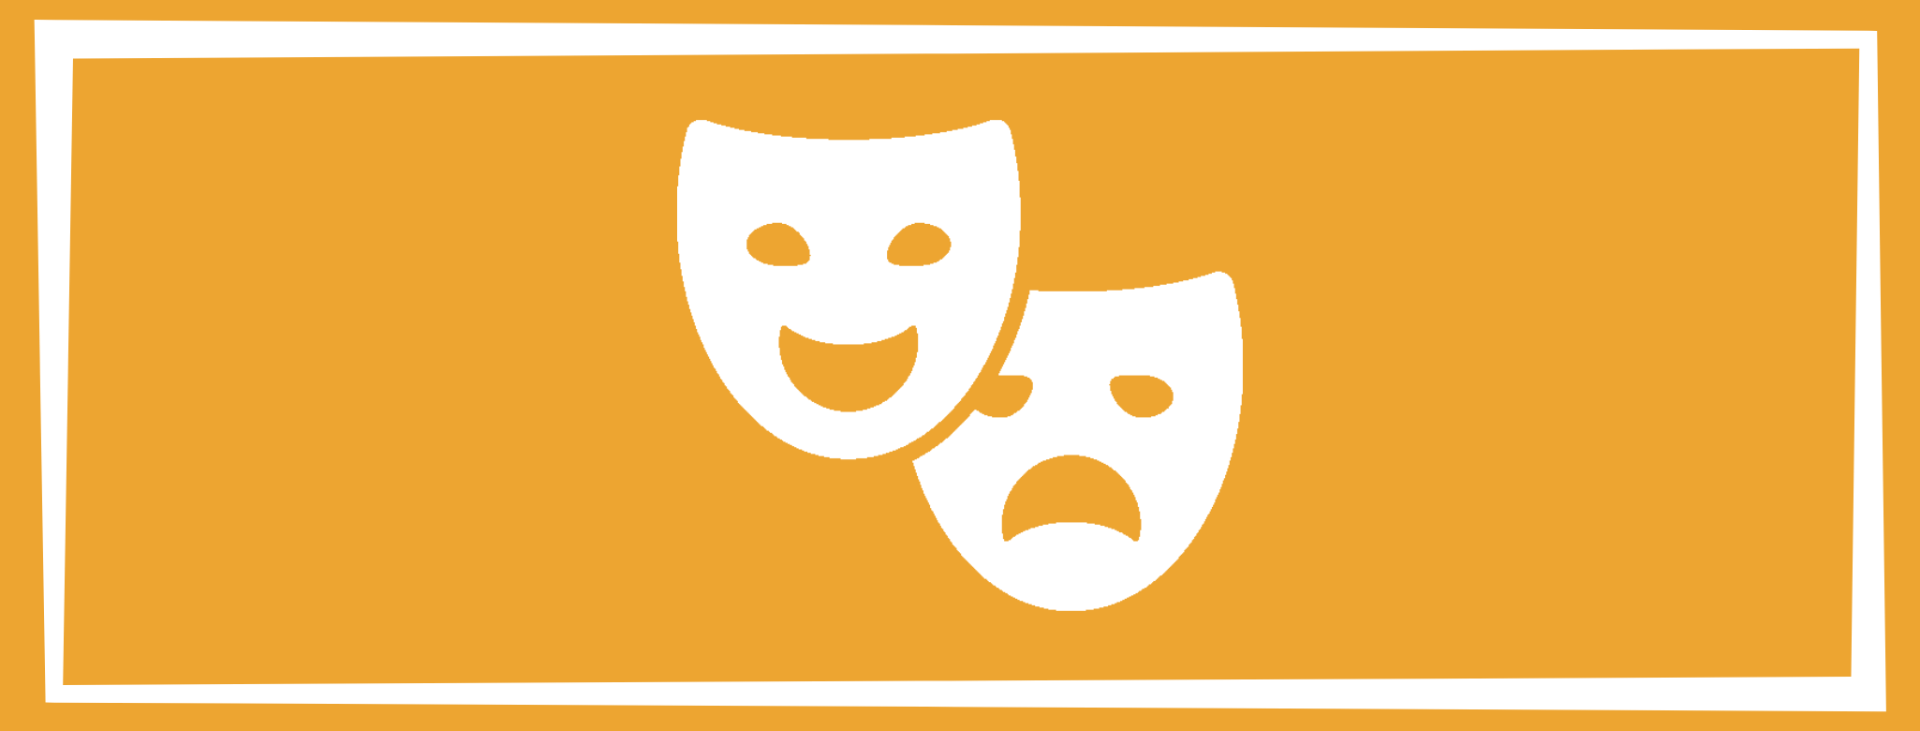 emotional wellness solid square with masks expression joy and grief